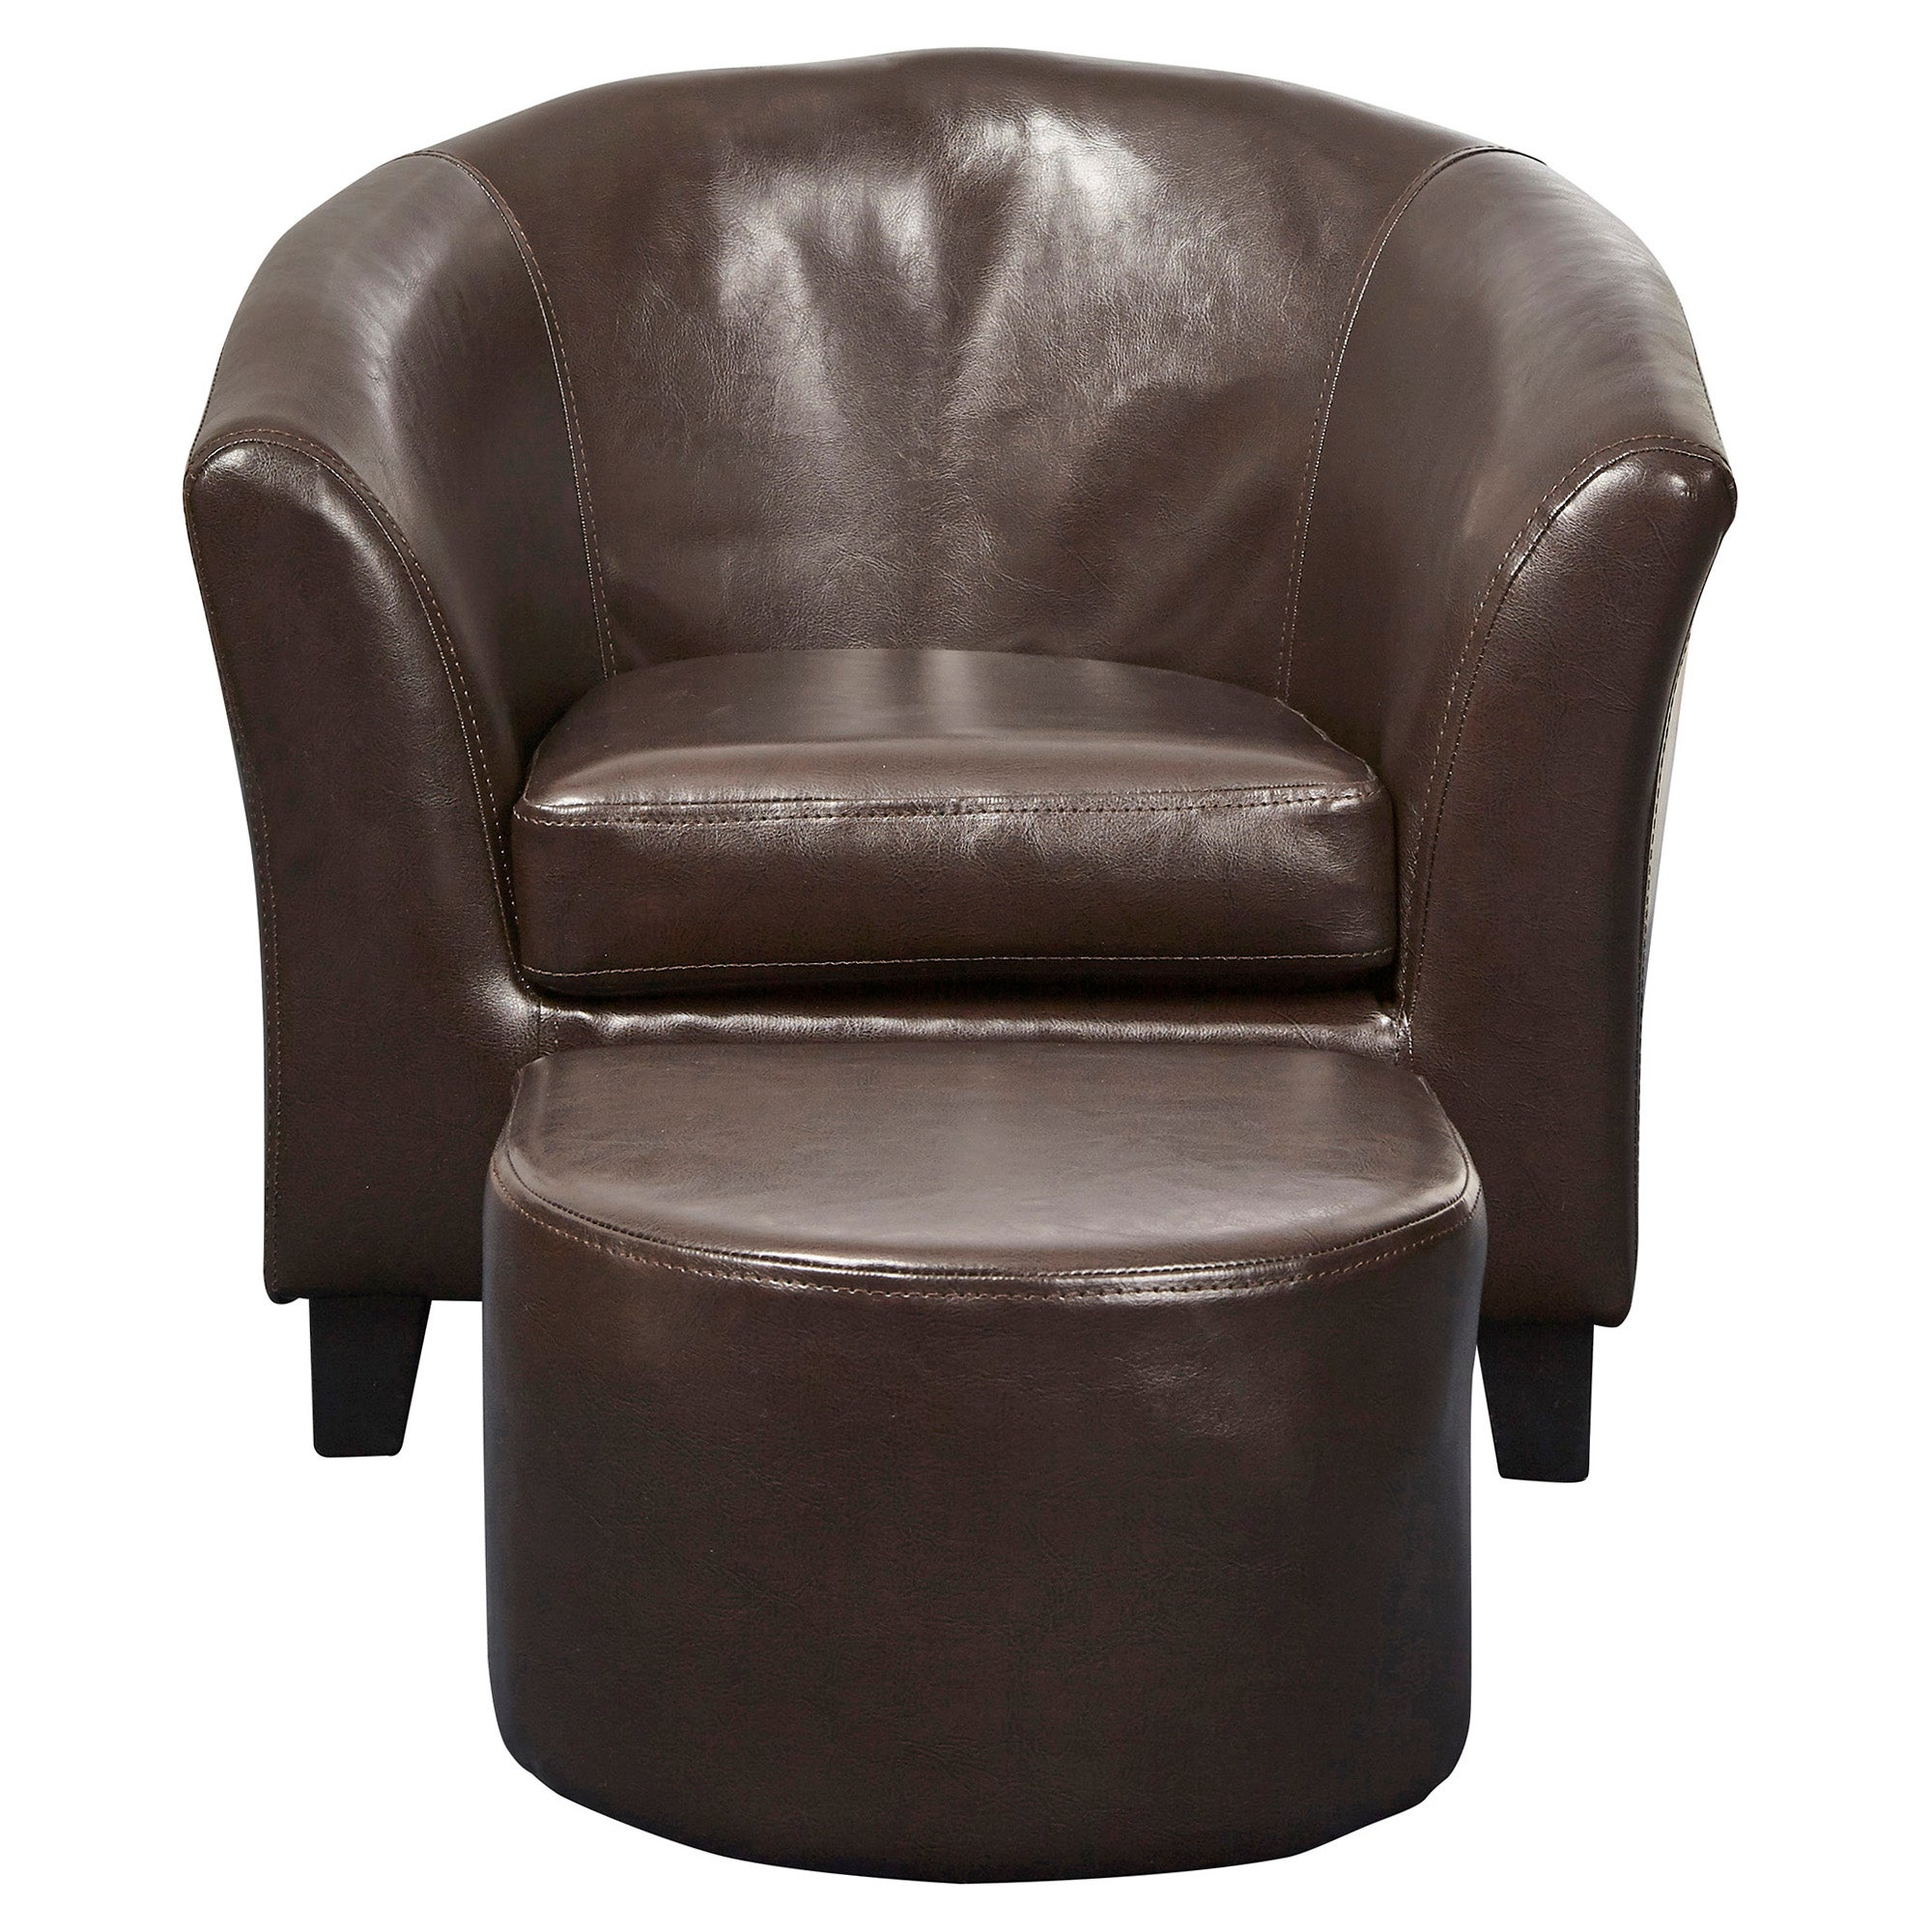 Kids Brown Faux Leather Tub Chair and Stool